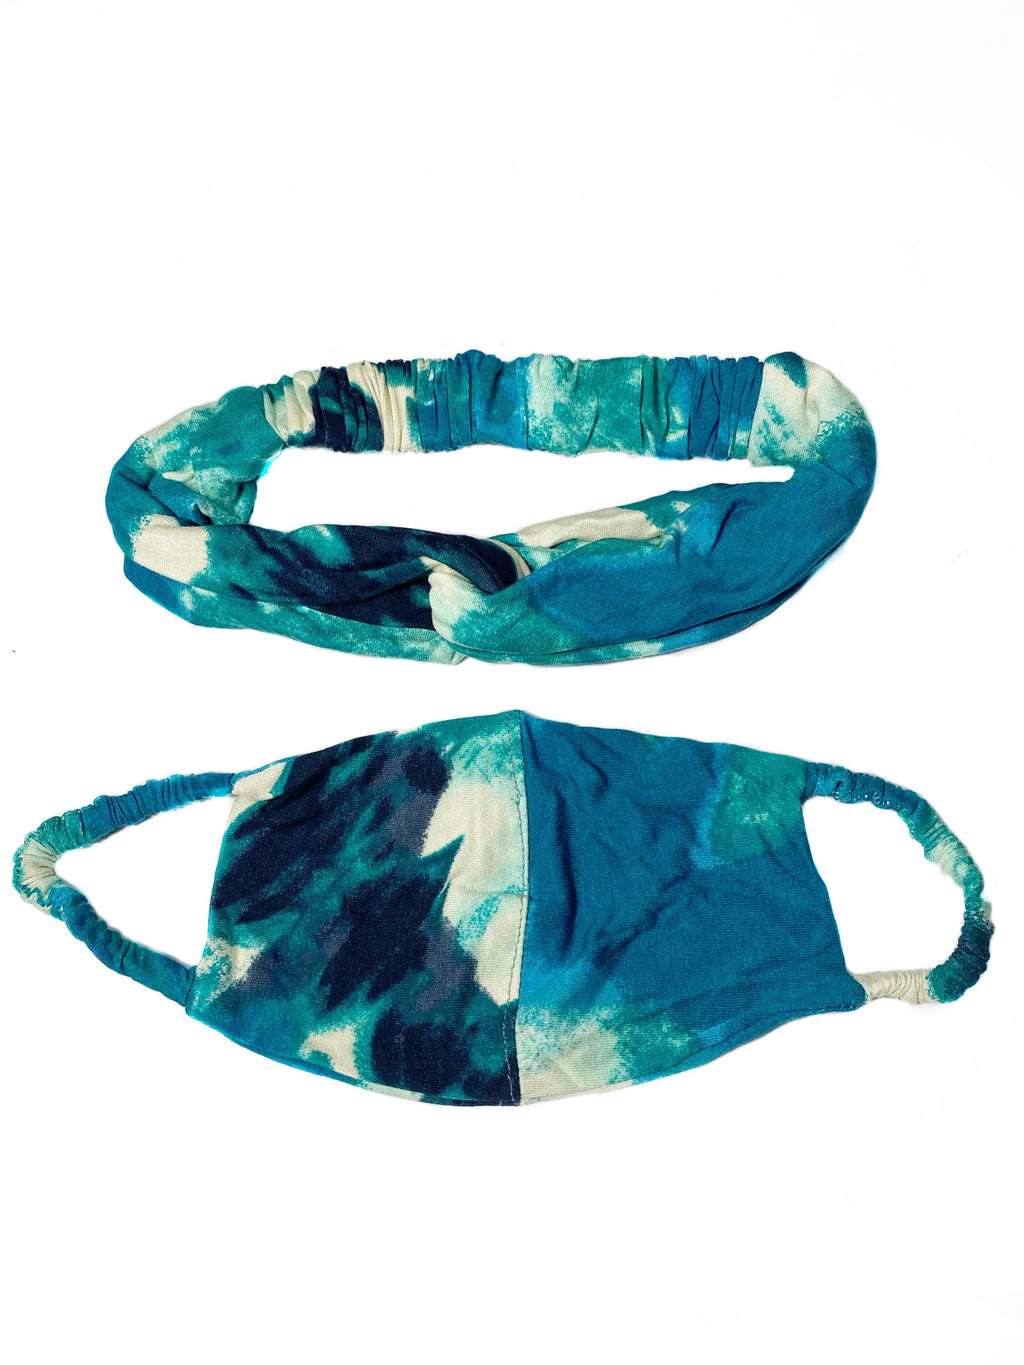 REUSABLE HEADBAND AND FACE MASK- TEAL